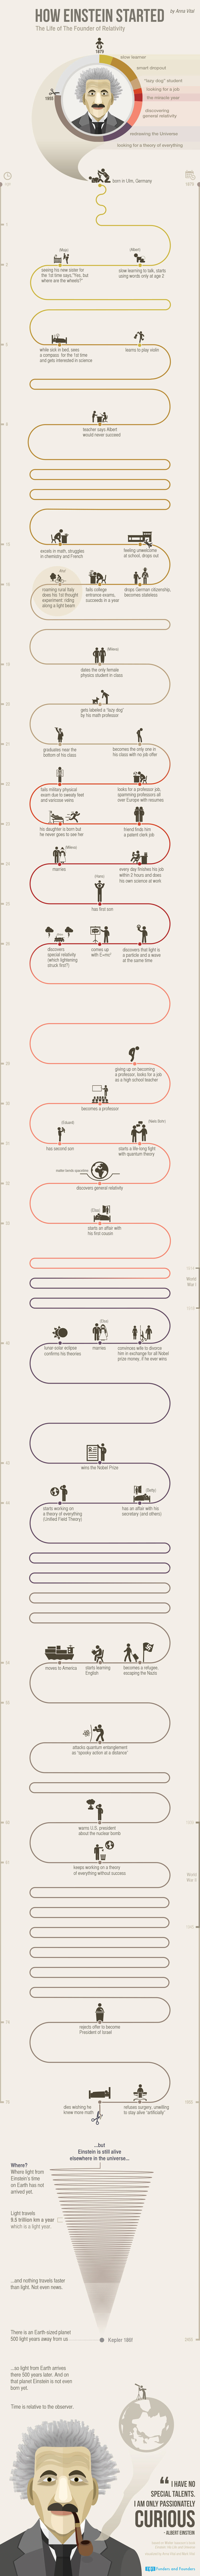 how einstein started infographic 2 How Einstein Went from Lazy Dog to Nobel Prize Winning Scientist